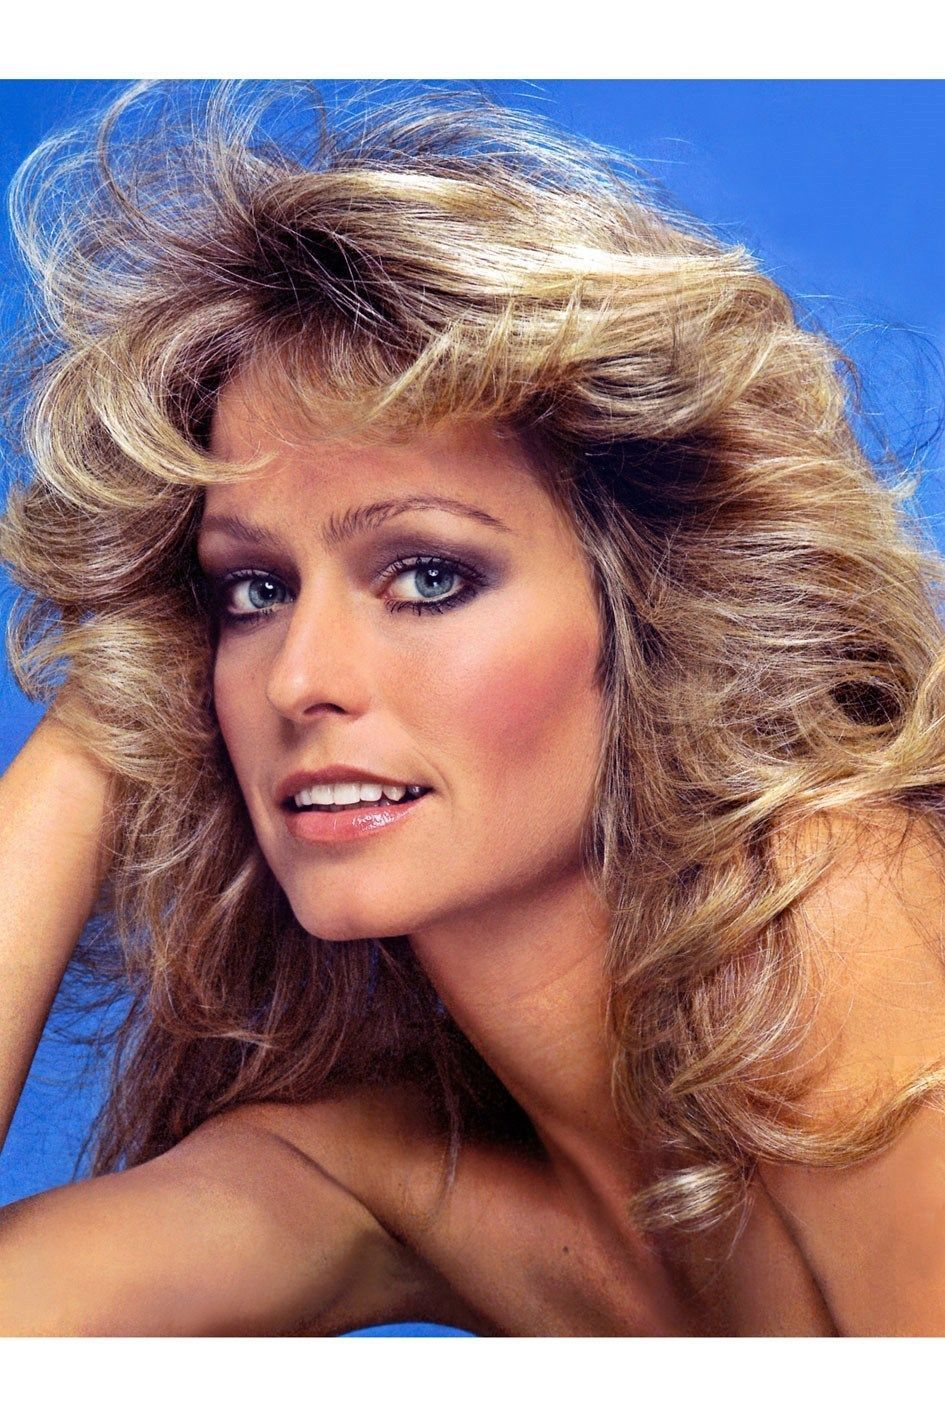 Hairstyle for teenager boy farrah fawcett  fashion and beauty icons  pinterest  farrah